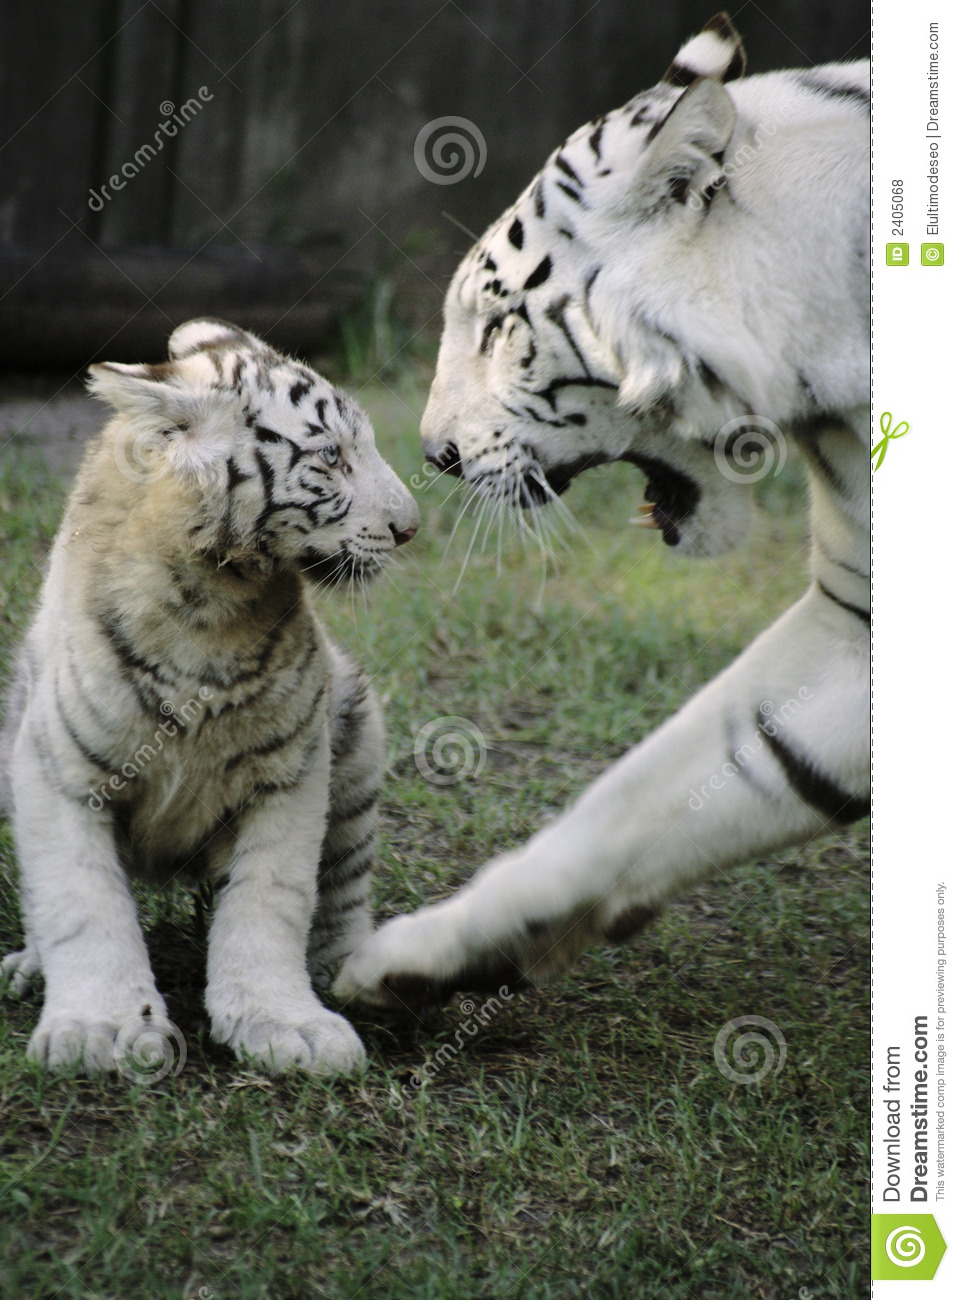 Cute Bengal Cats Wallpaper White Tiger With Baby Royalty Free Stock Photos Image